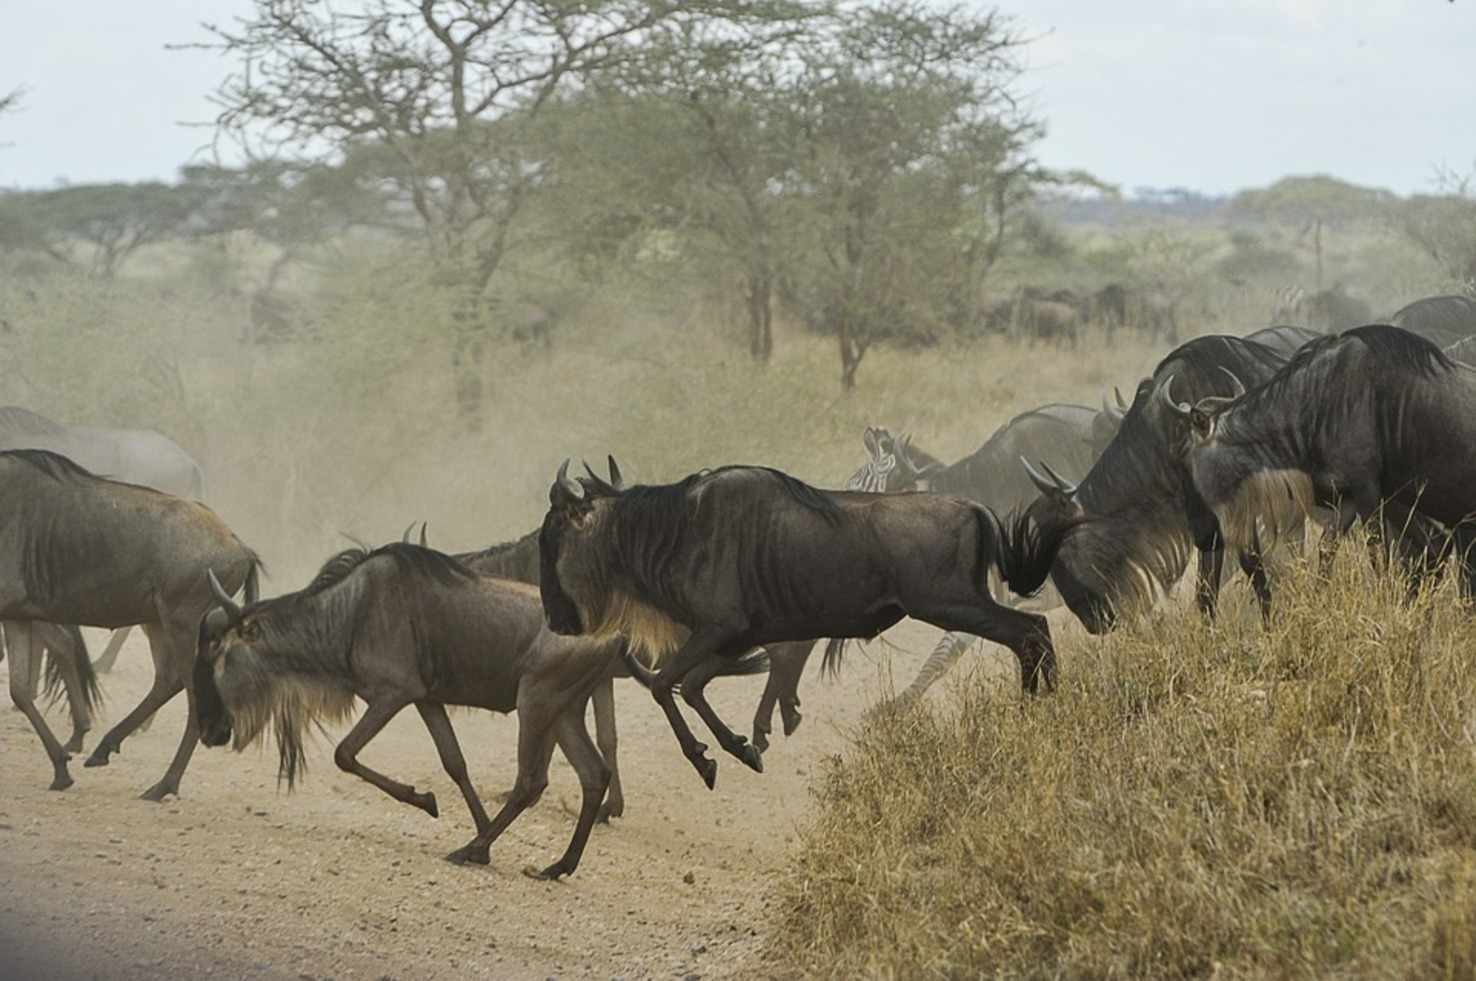 Large wildebeests